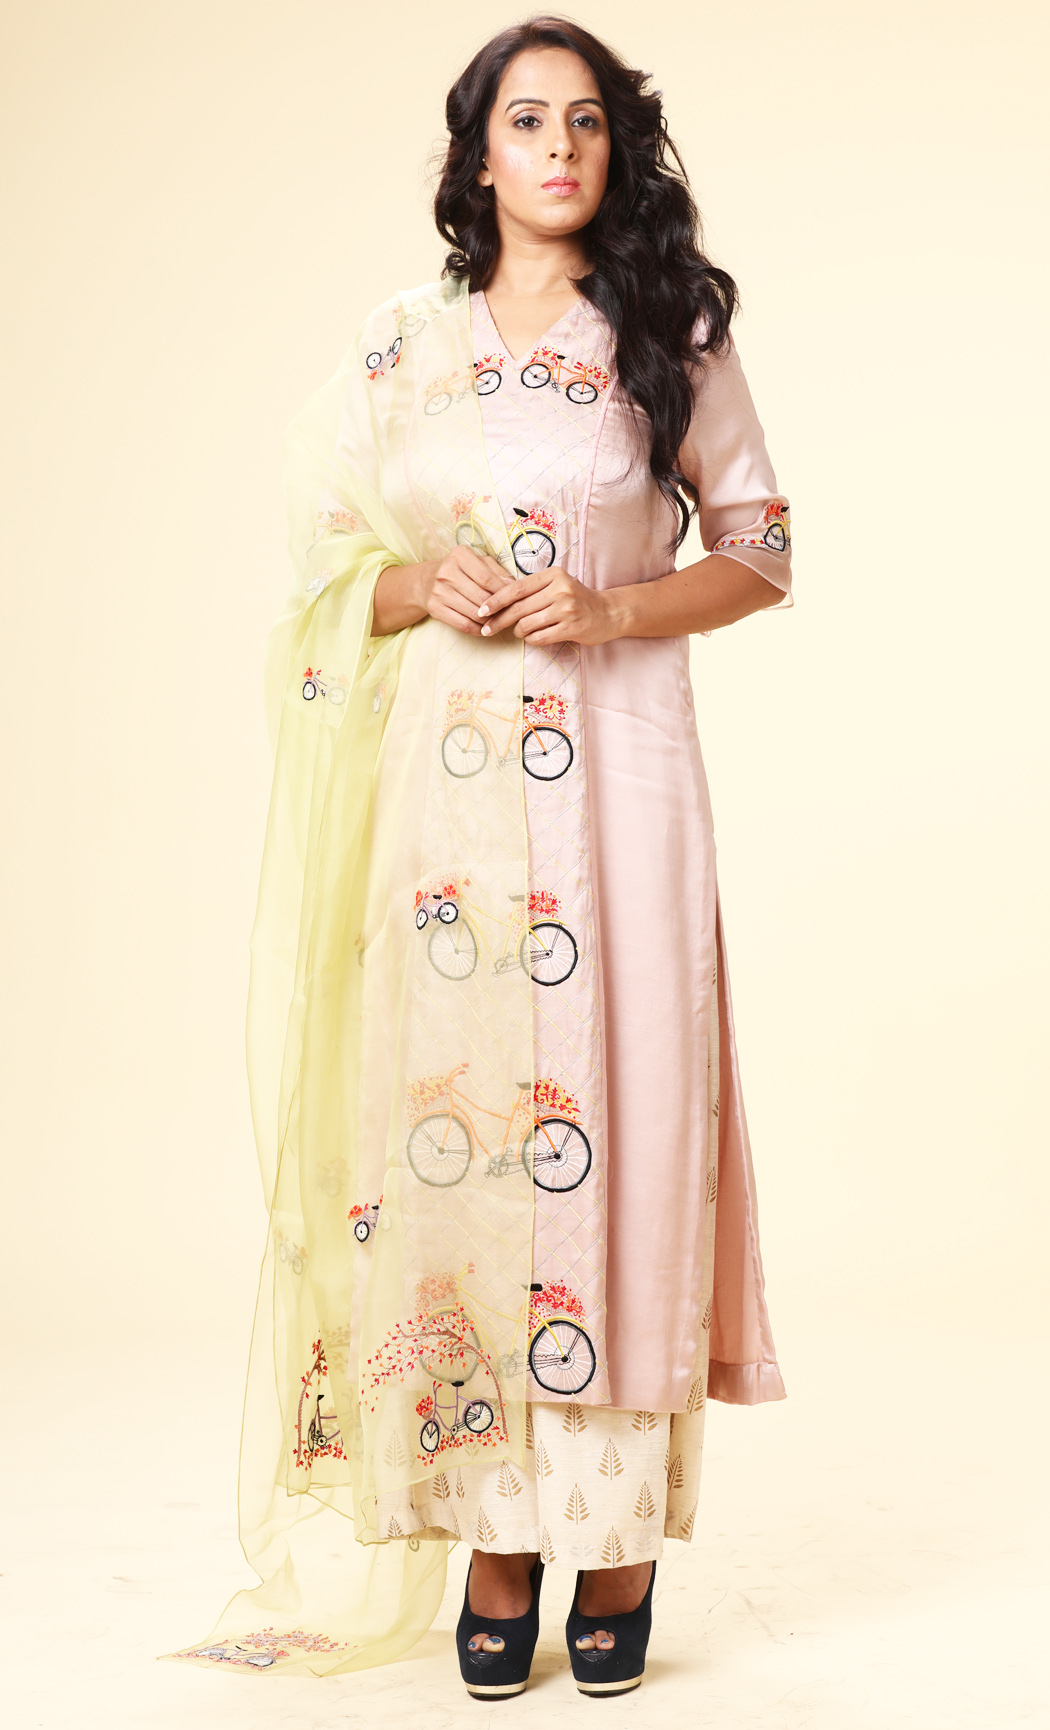 Baby Pink Embroidered Kurta with a Mint Green Dupatta and Pants - Buy Online